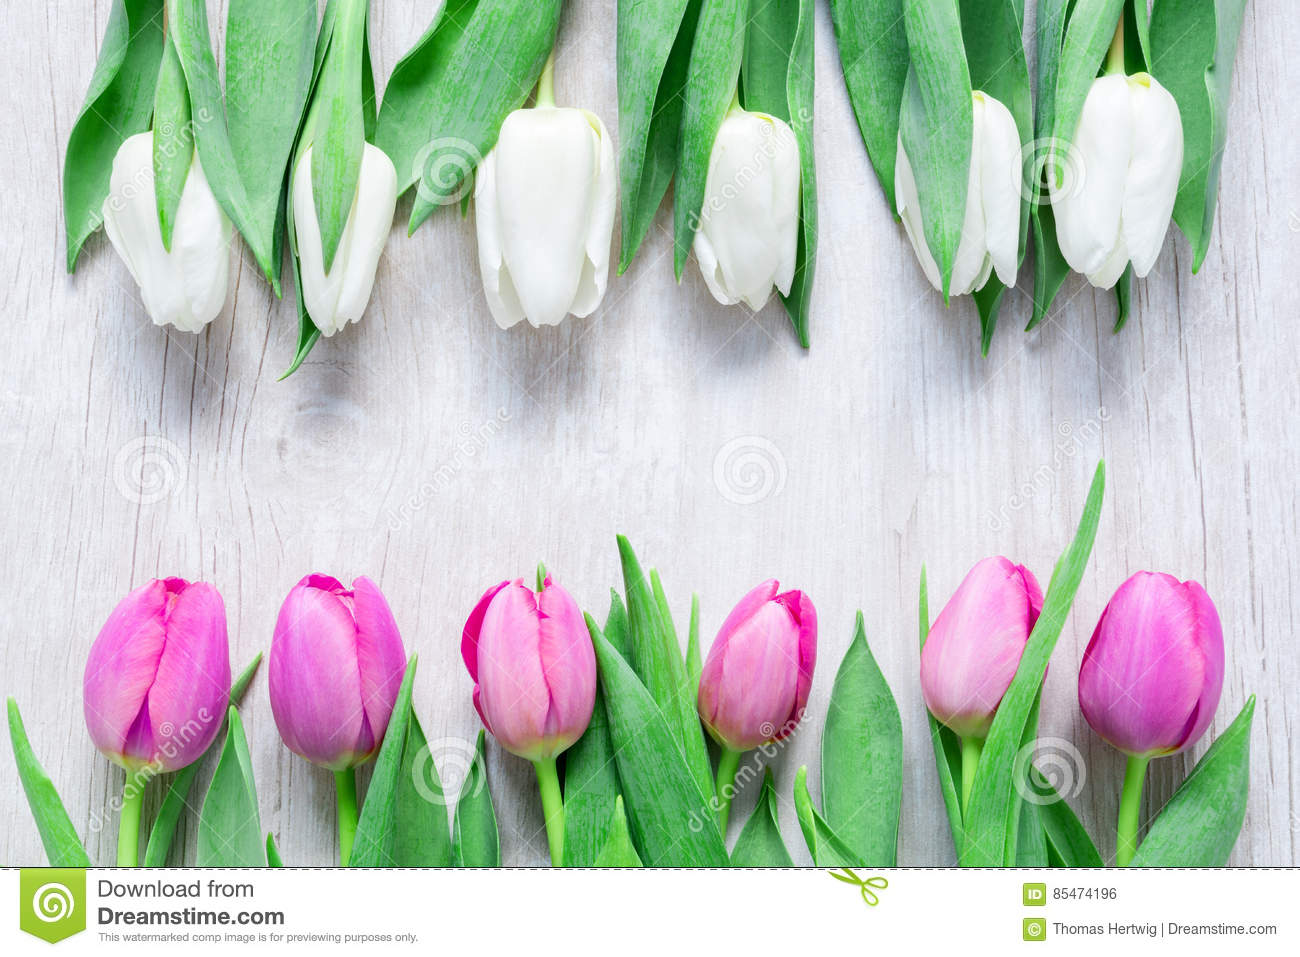 Tulips Flowers In A Row On Wooden Table For March 8 Internatio